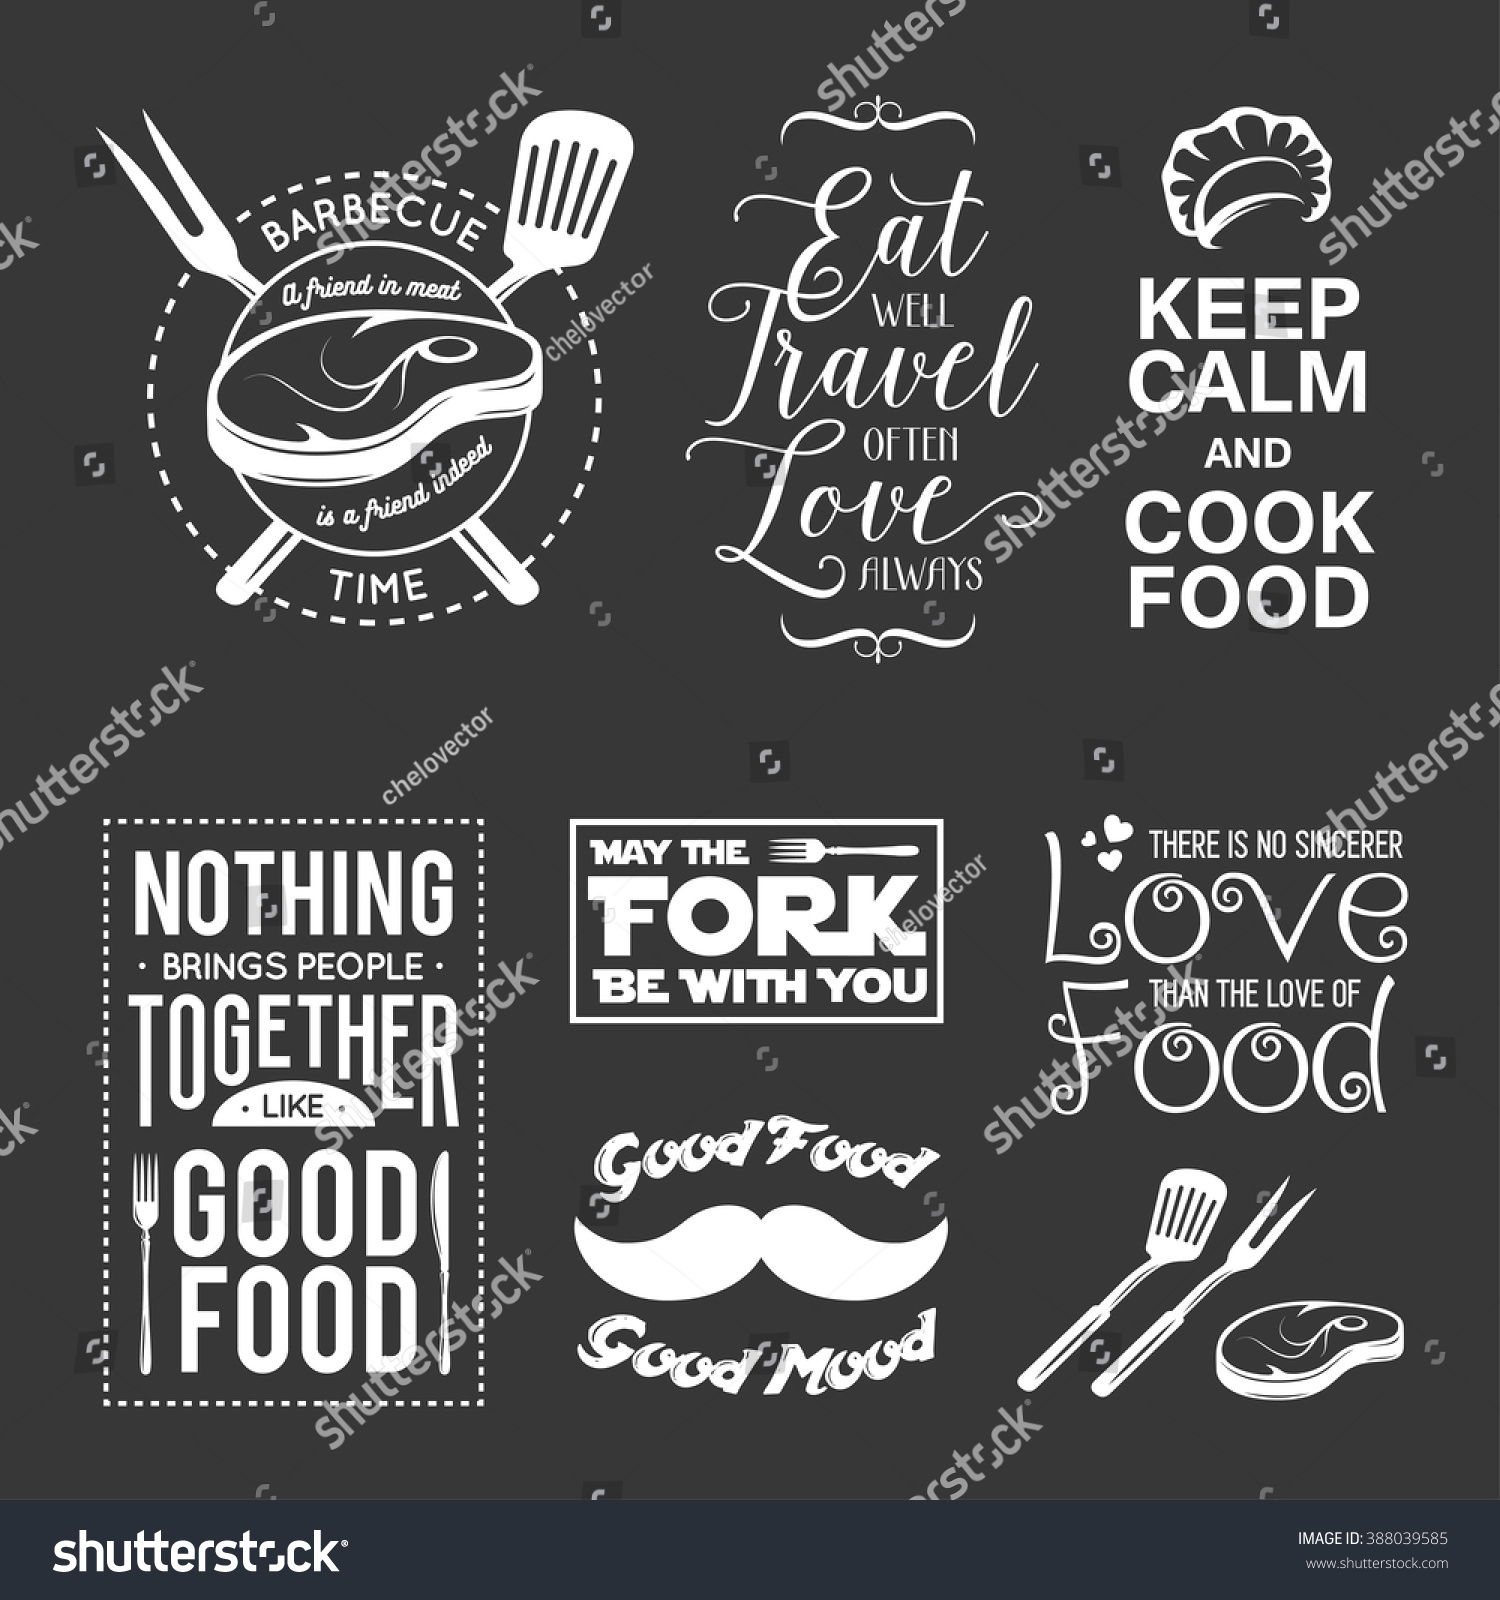 Set of vintage food related typographic quotes Vector illustration Kitchen printable design elements